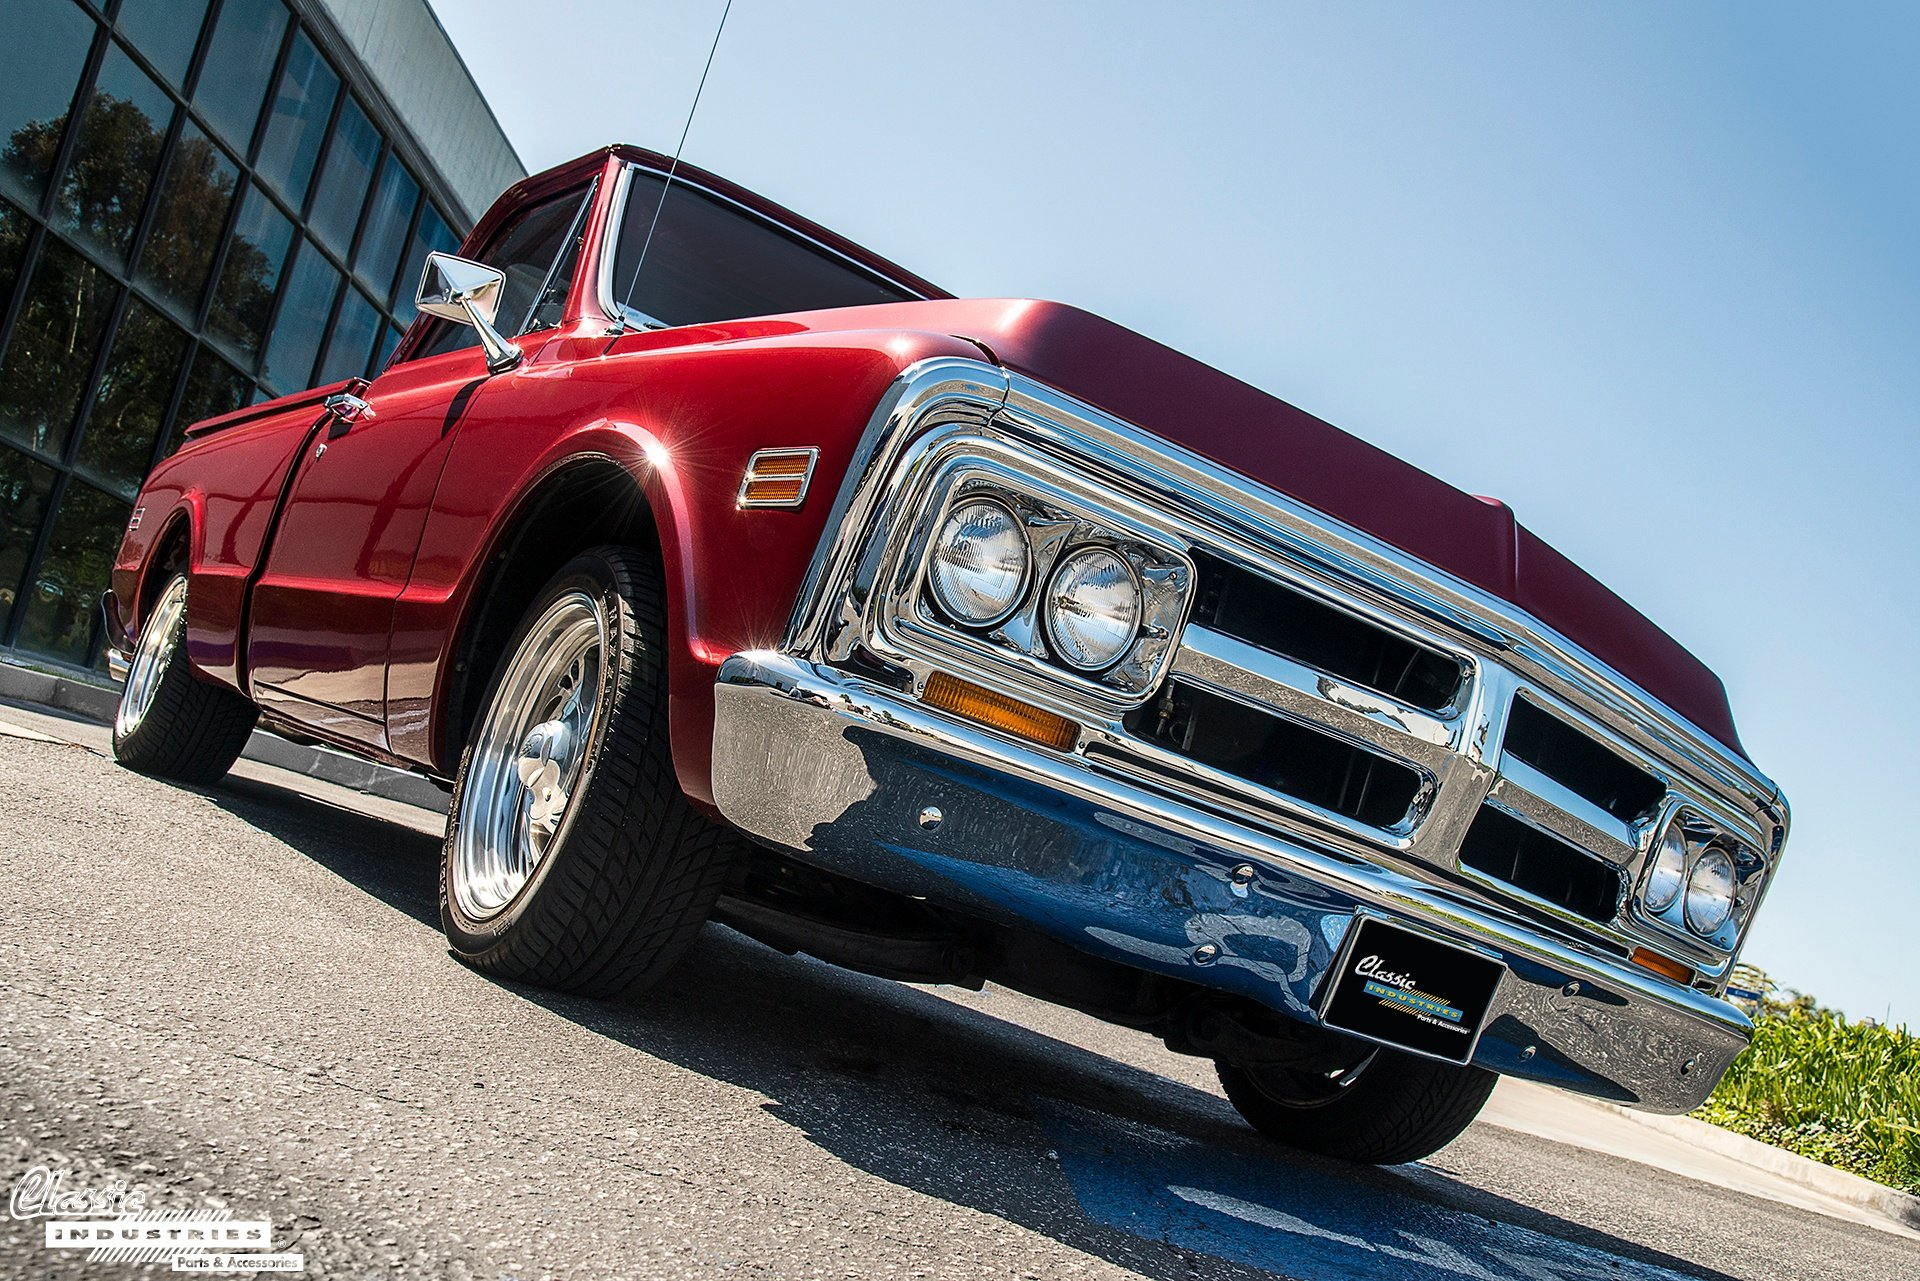 With Its Quad Headlamps And Distinctive Crosshair Shaped Grill The 1967 72 GMC Pickup Truck Diverges Slightly From Appearance Of More Common Chevy